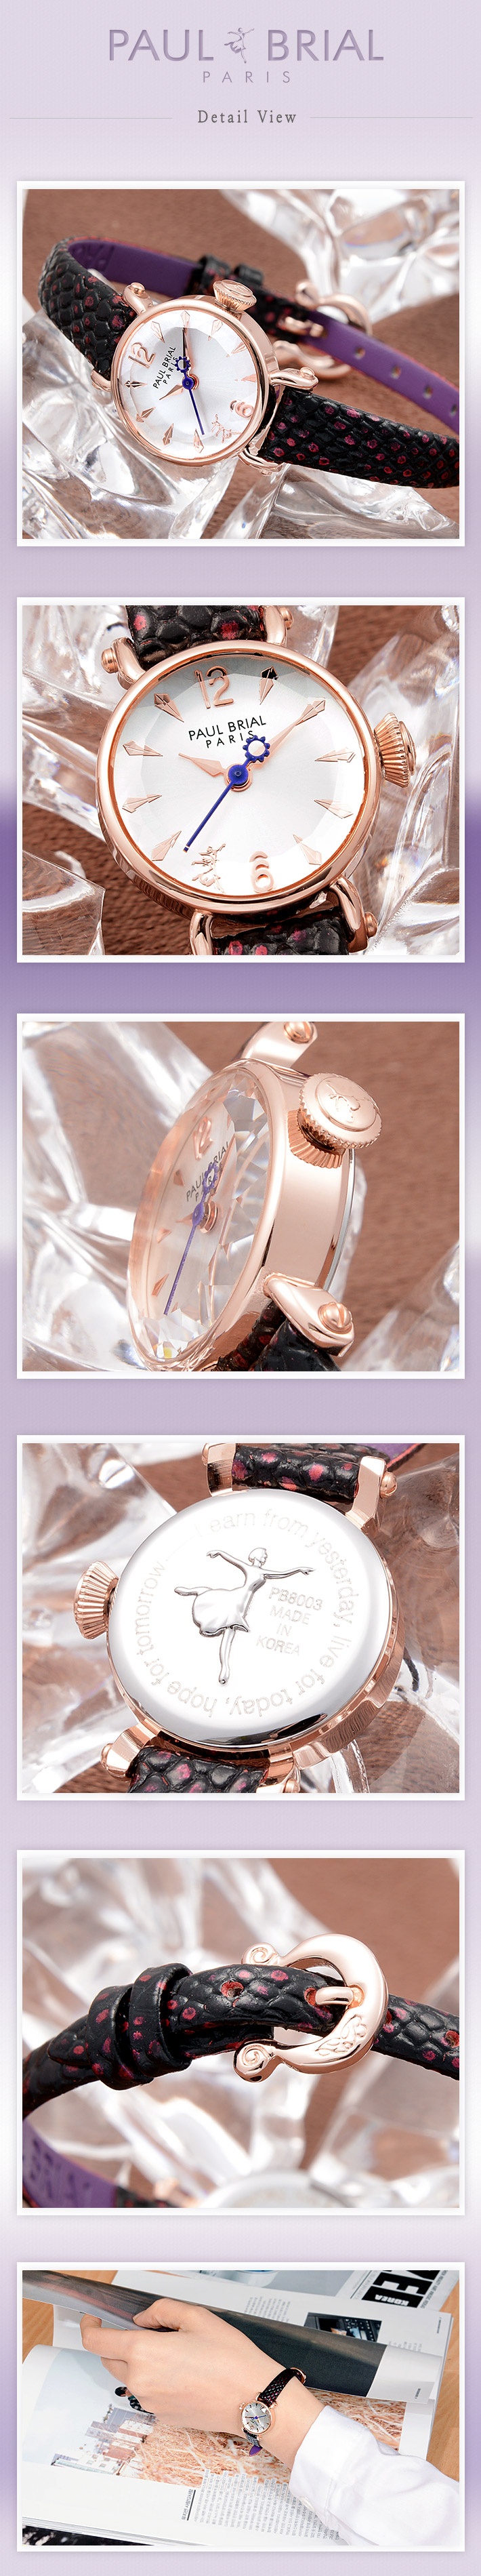 [ PAUL BRIAL ] KOREA MADE HIGH QUALITY LADIES ROSE GOLD RED BLACK LEATHER BAND WATCH PB8003RGPBK TOULOUSE